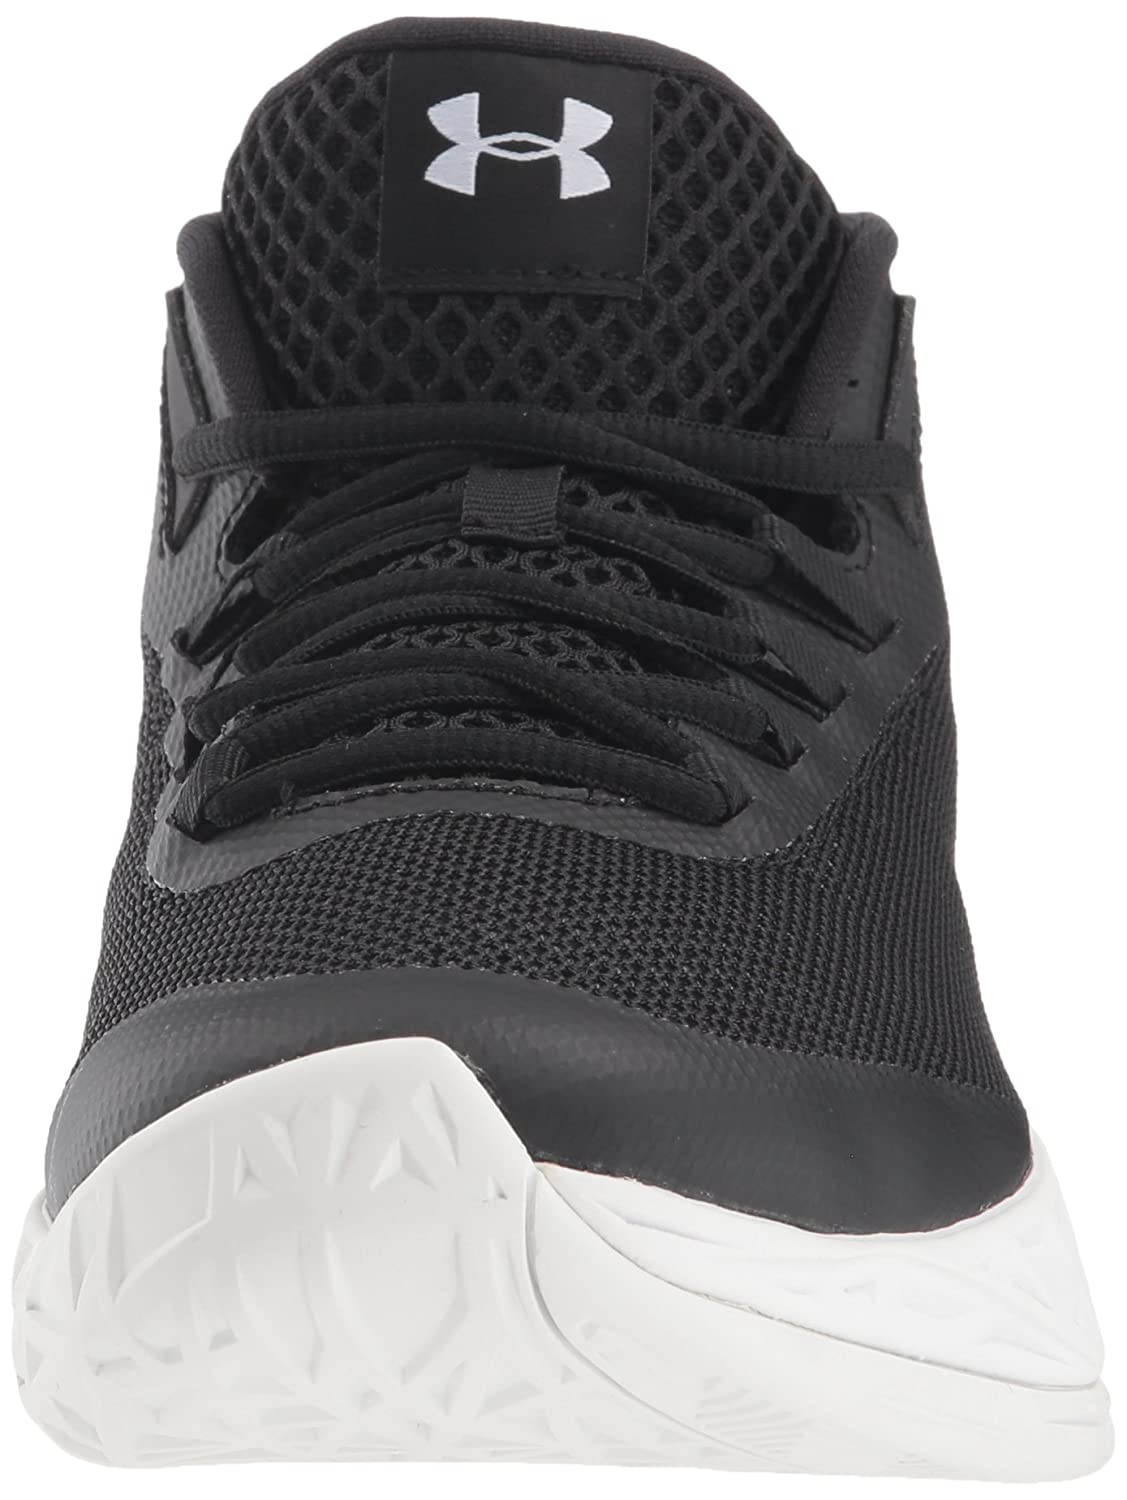 Man's/Woman's Under Armour Men's Black/Steel/White Jet Mid Basketball Shoe, Black/Steel/White Men's Practical and economical Beautiful appearance professional design GB25445 440c72